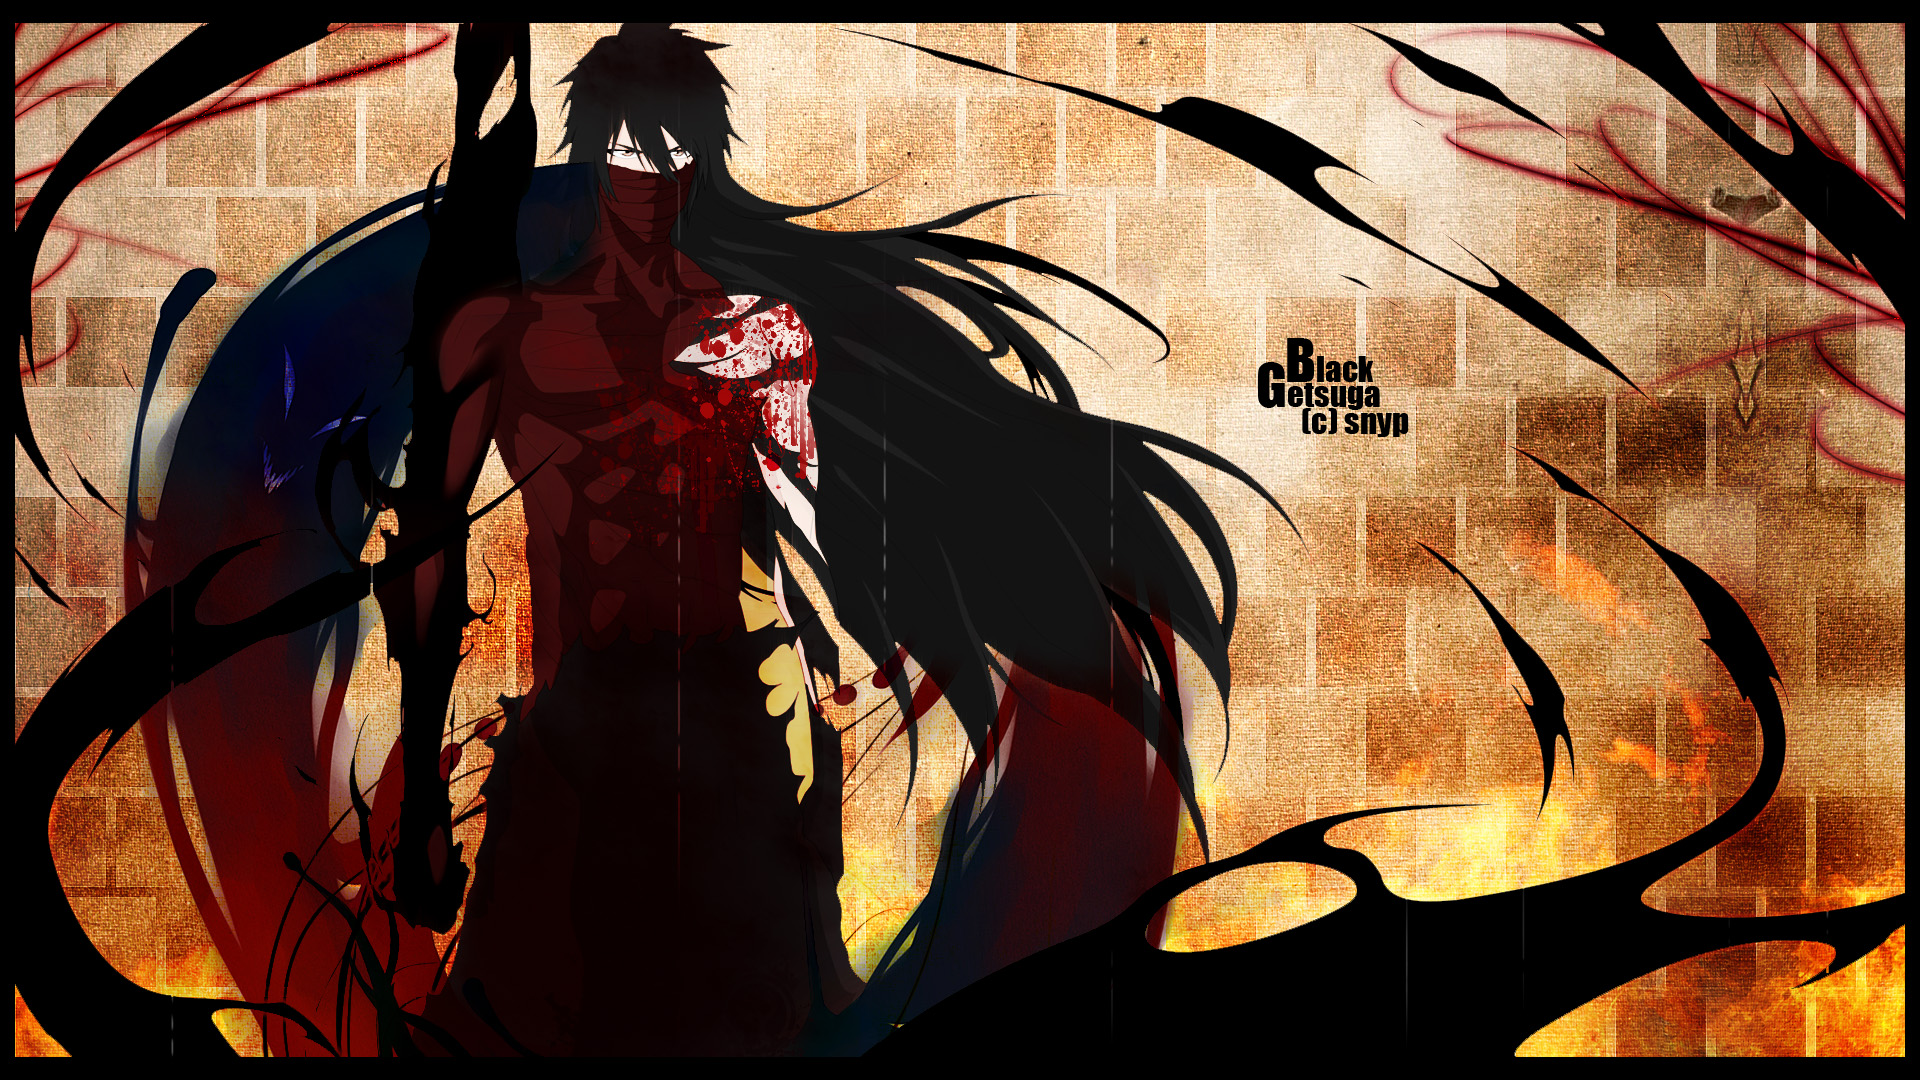 Wallpaper Abyss Explore the Collection Bleach Anime Bleach 264122 1920x1080